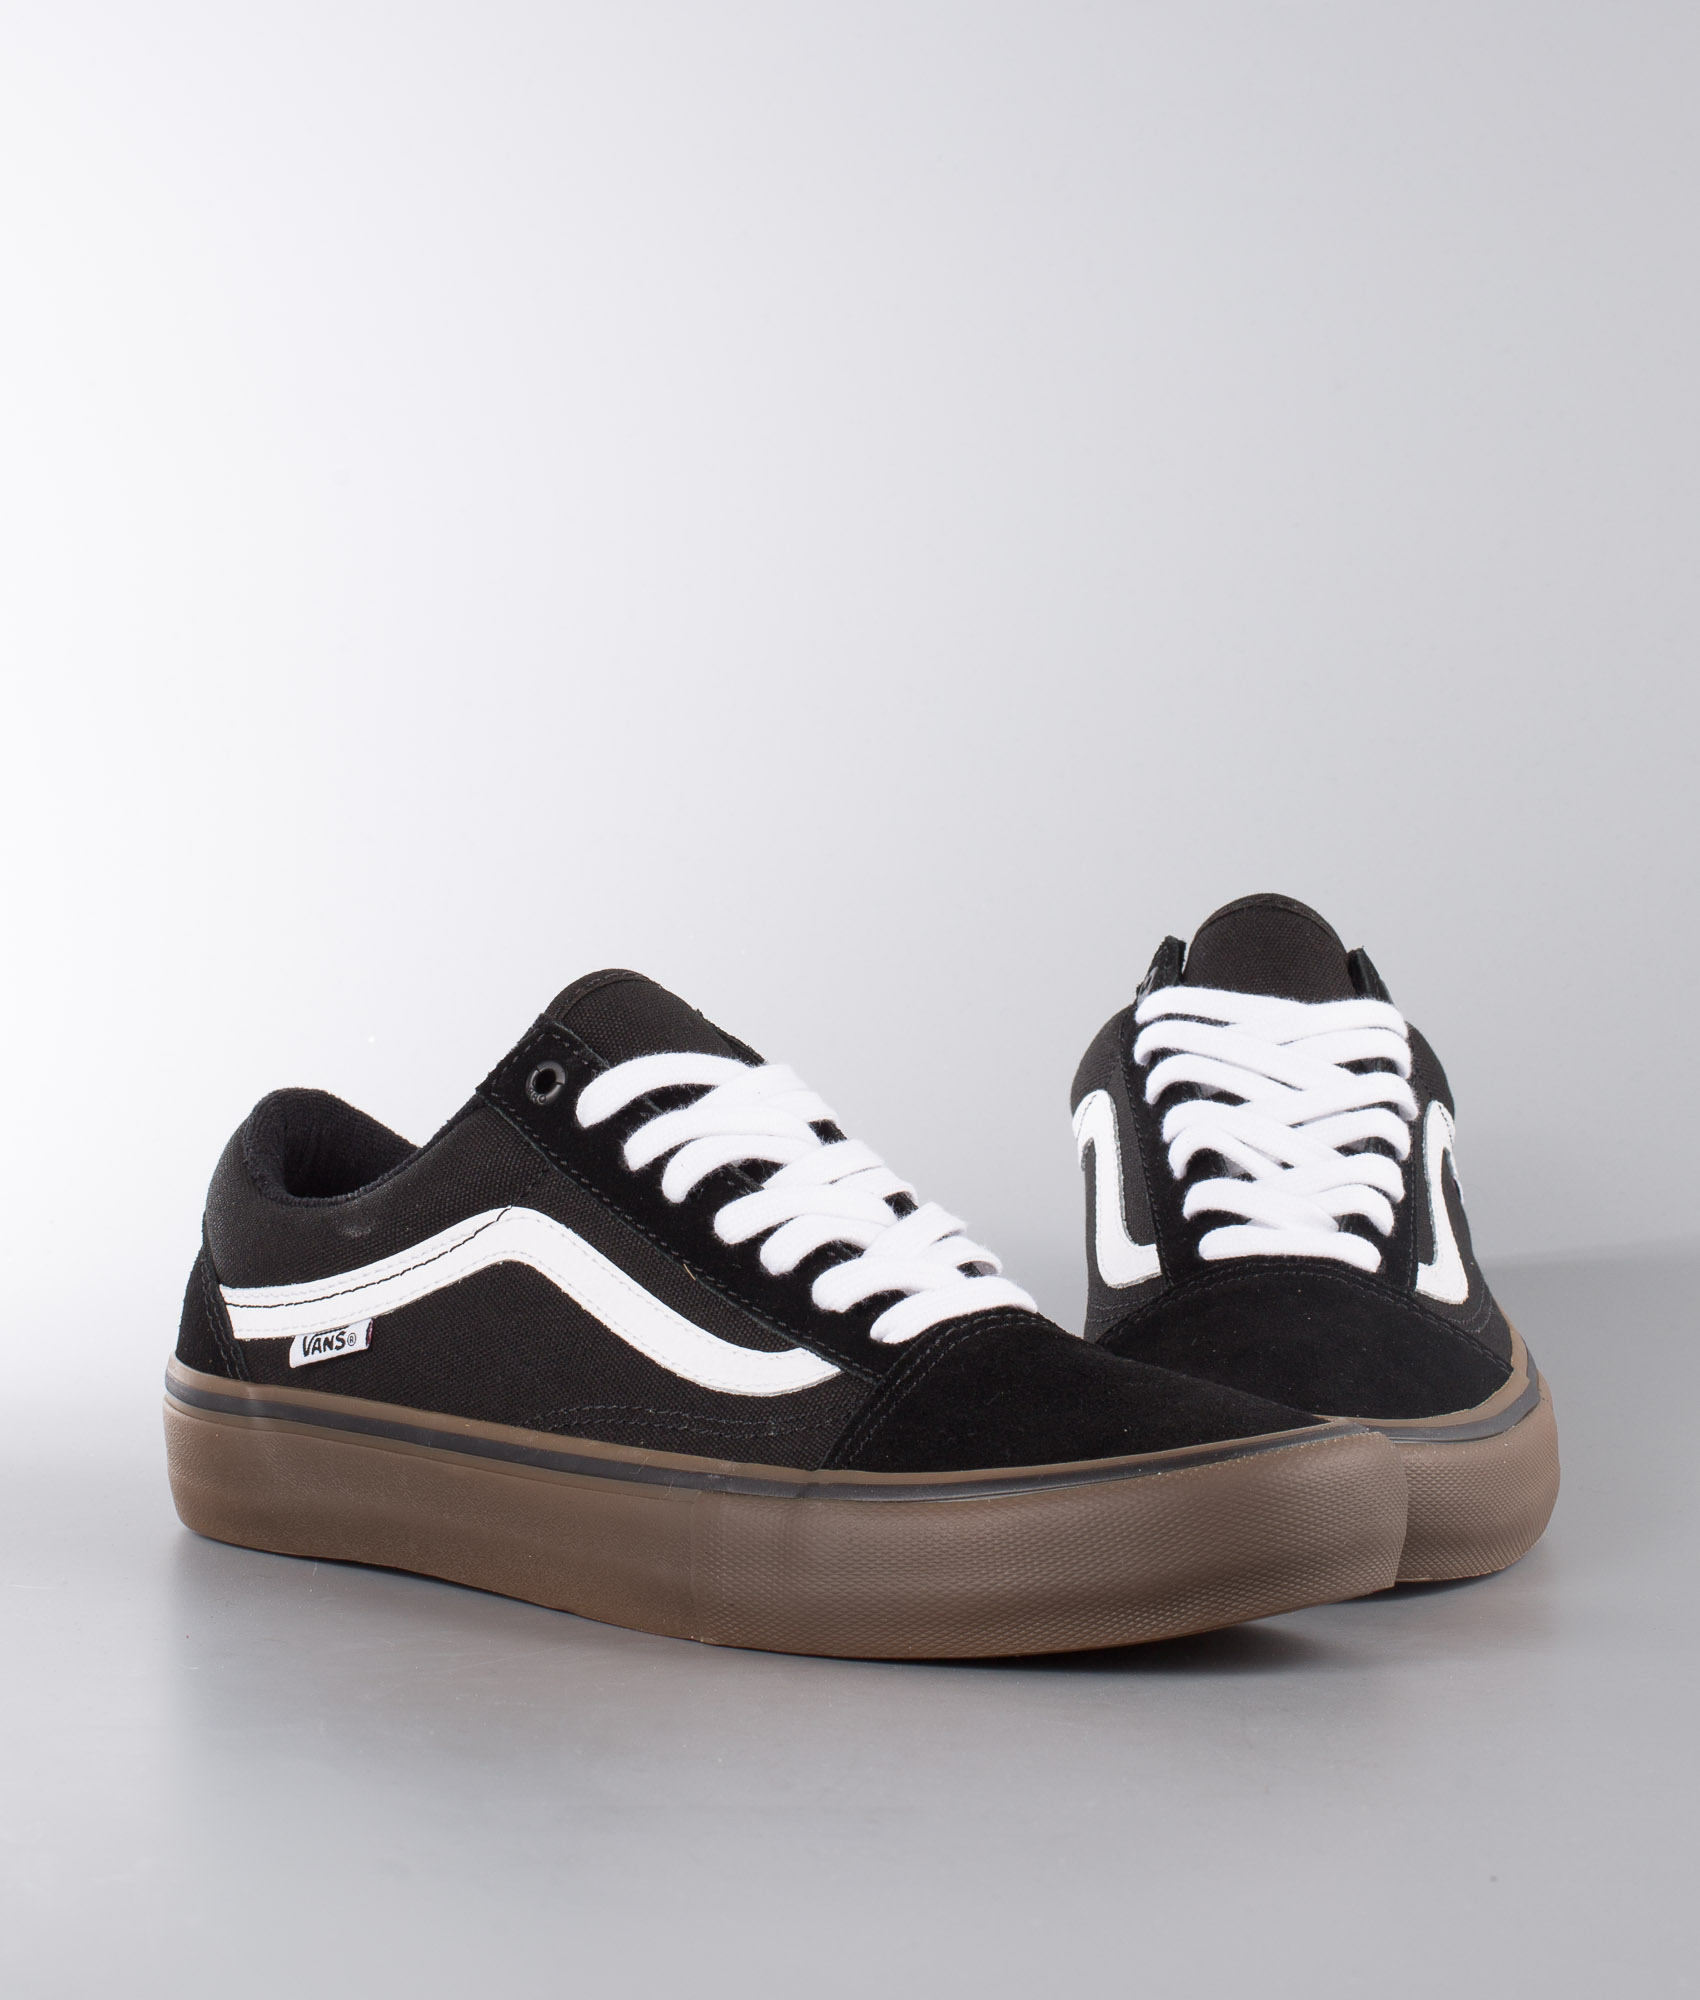 Vans Old Skool Pro Schuhe Black/White/Medium Gum